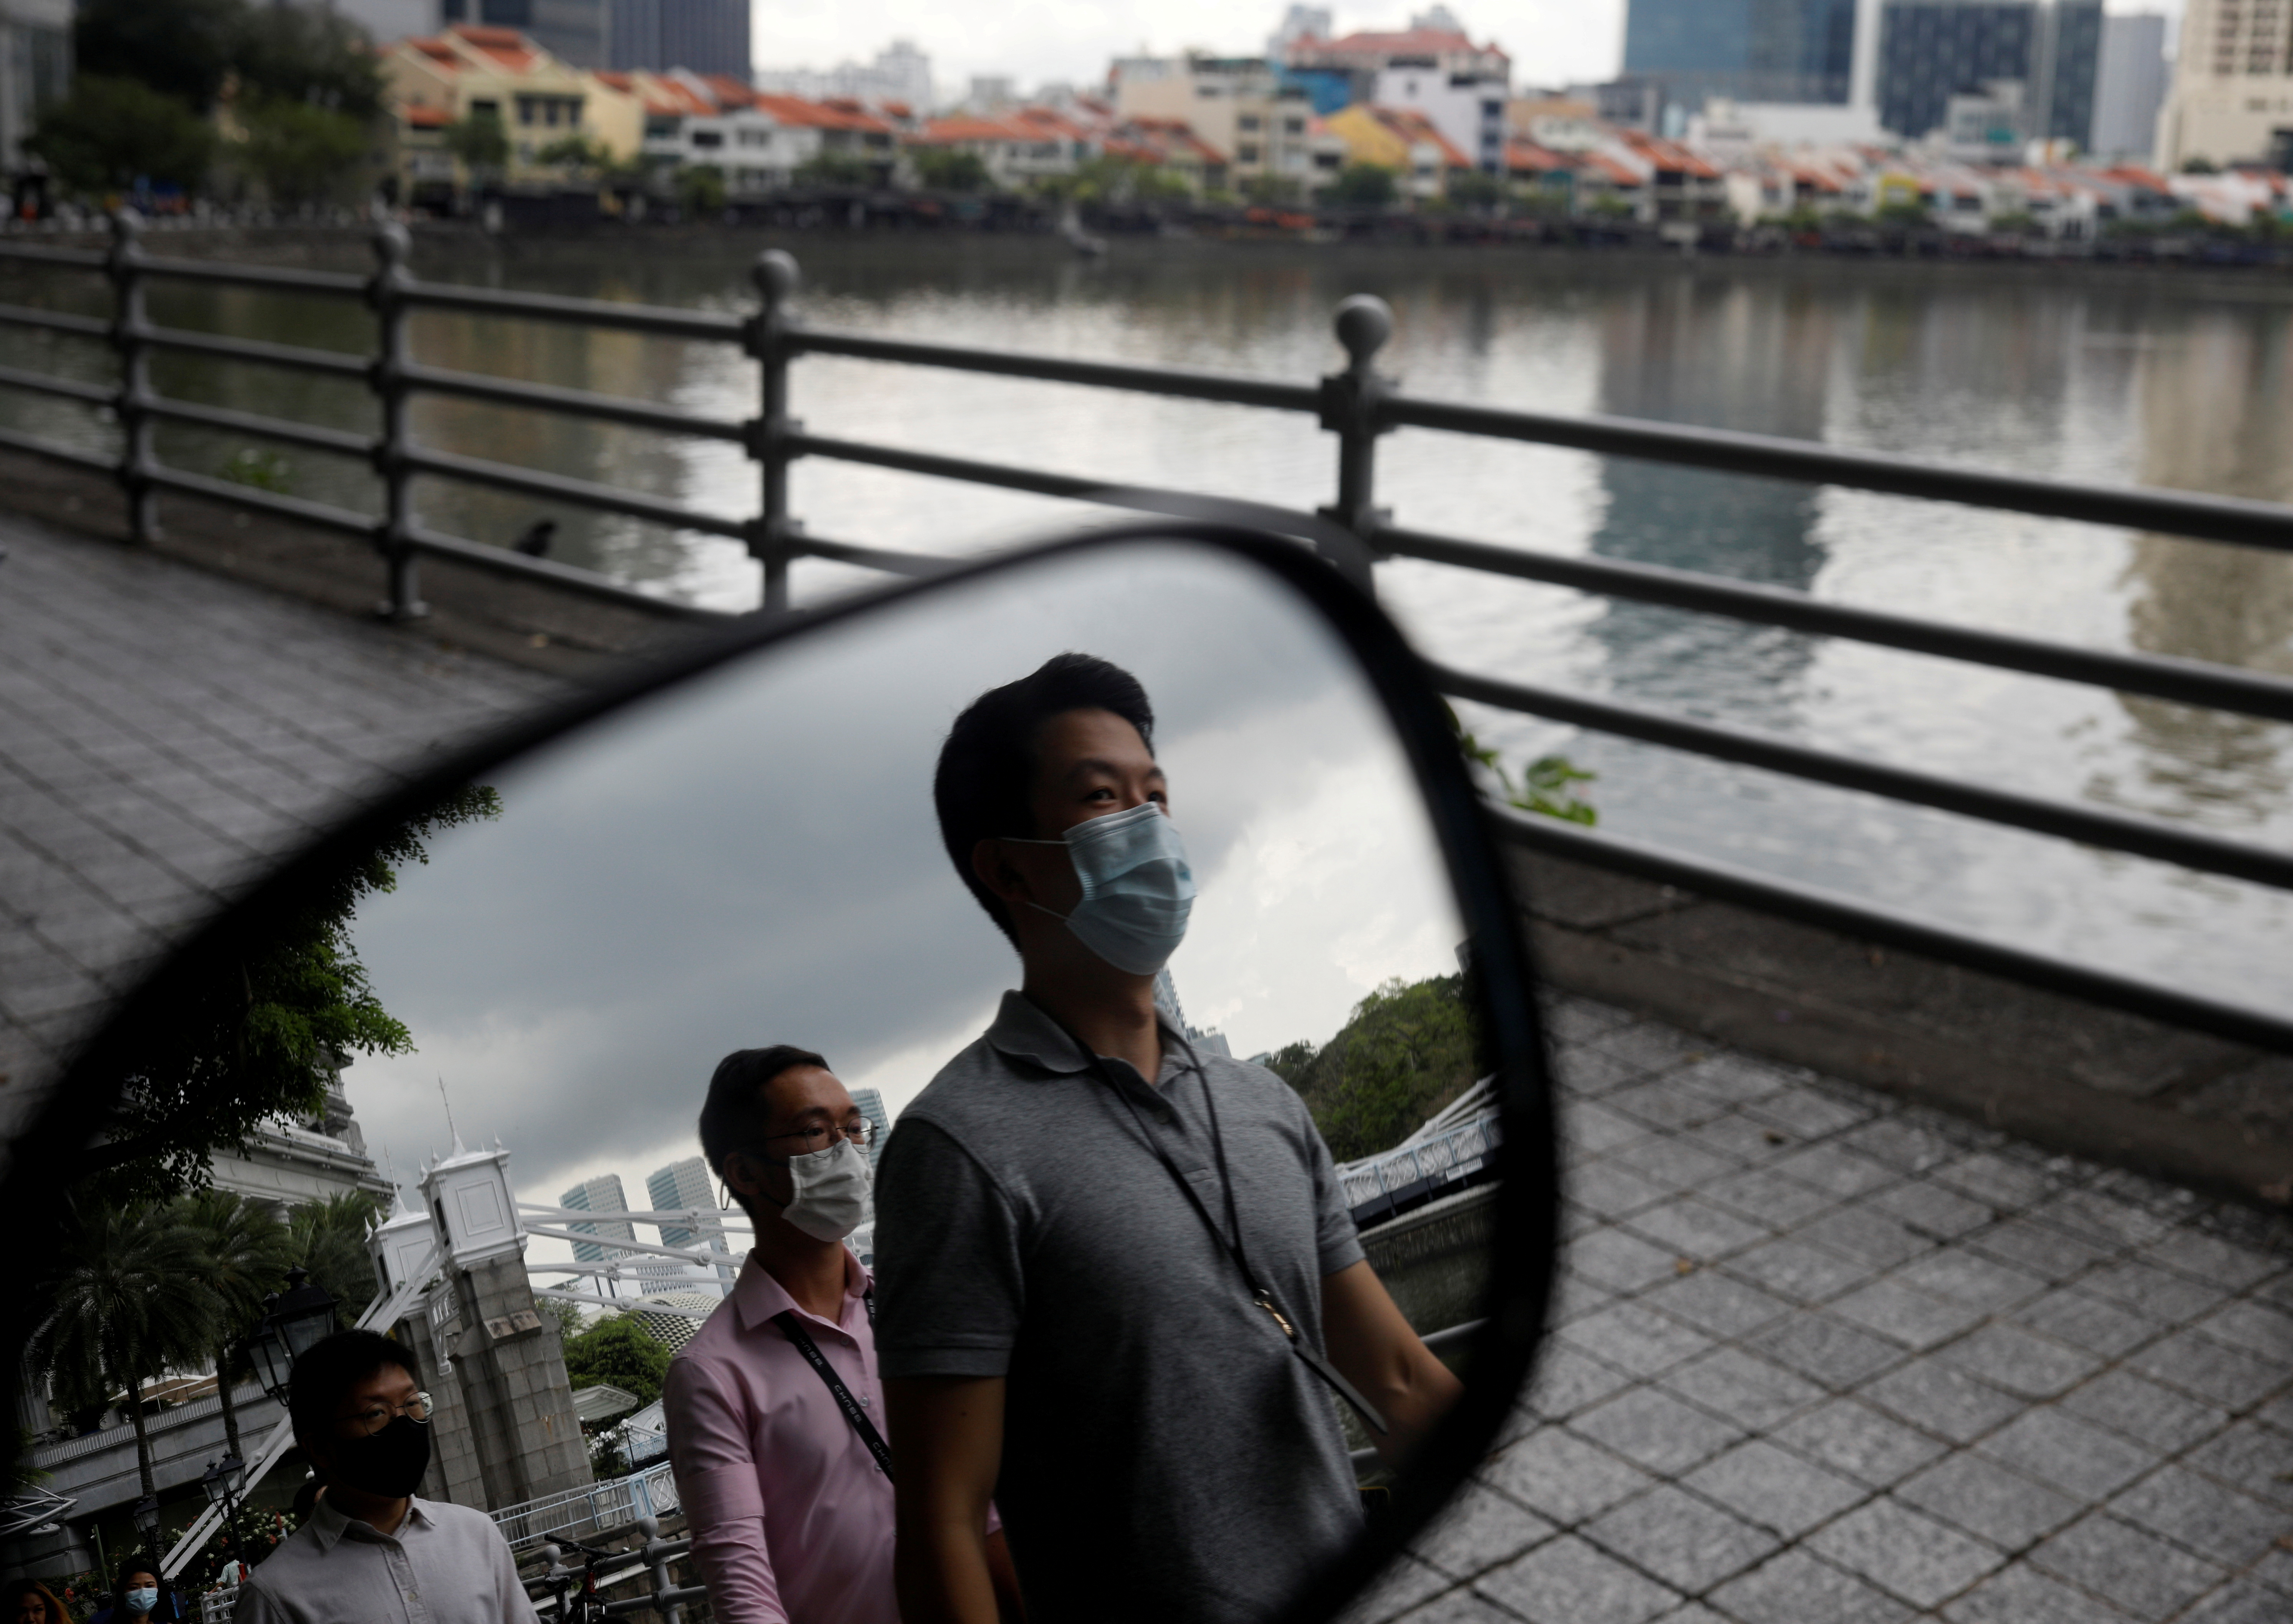 People wearing face masks as a precaution against the coronavirus disease (COVID-19) walk during lunch hour at the central business district in Singapore, December 14, 2020.  REUTERS/Edgar Su/File Photo